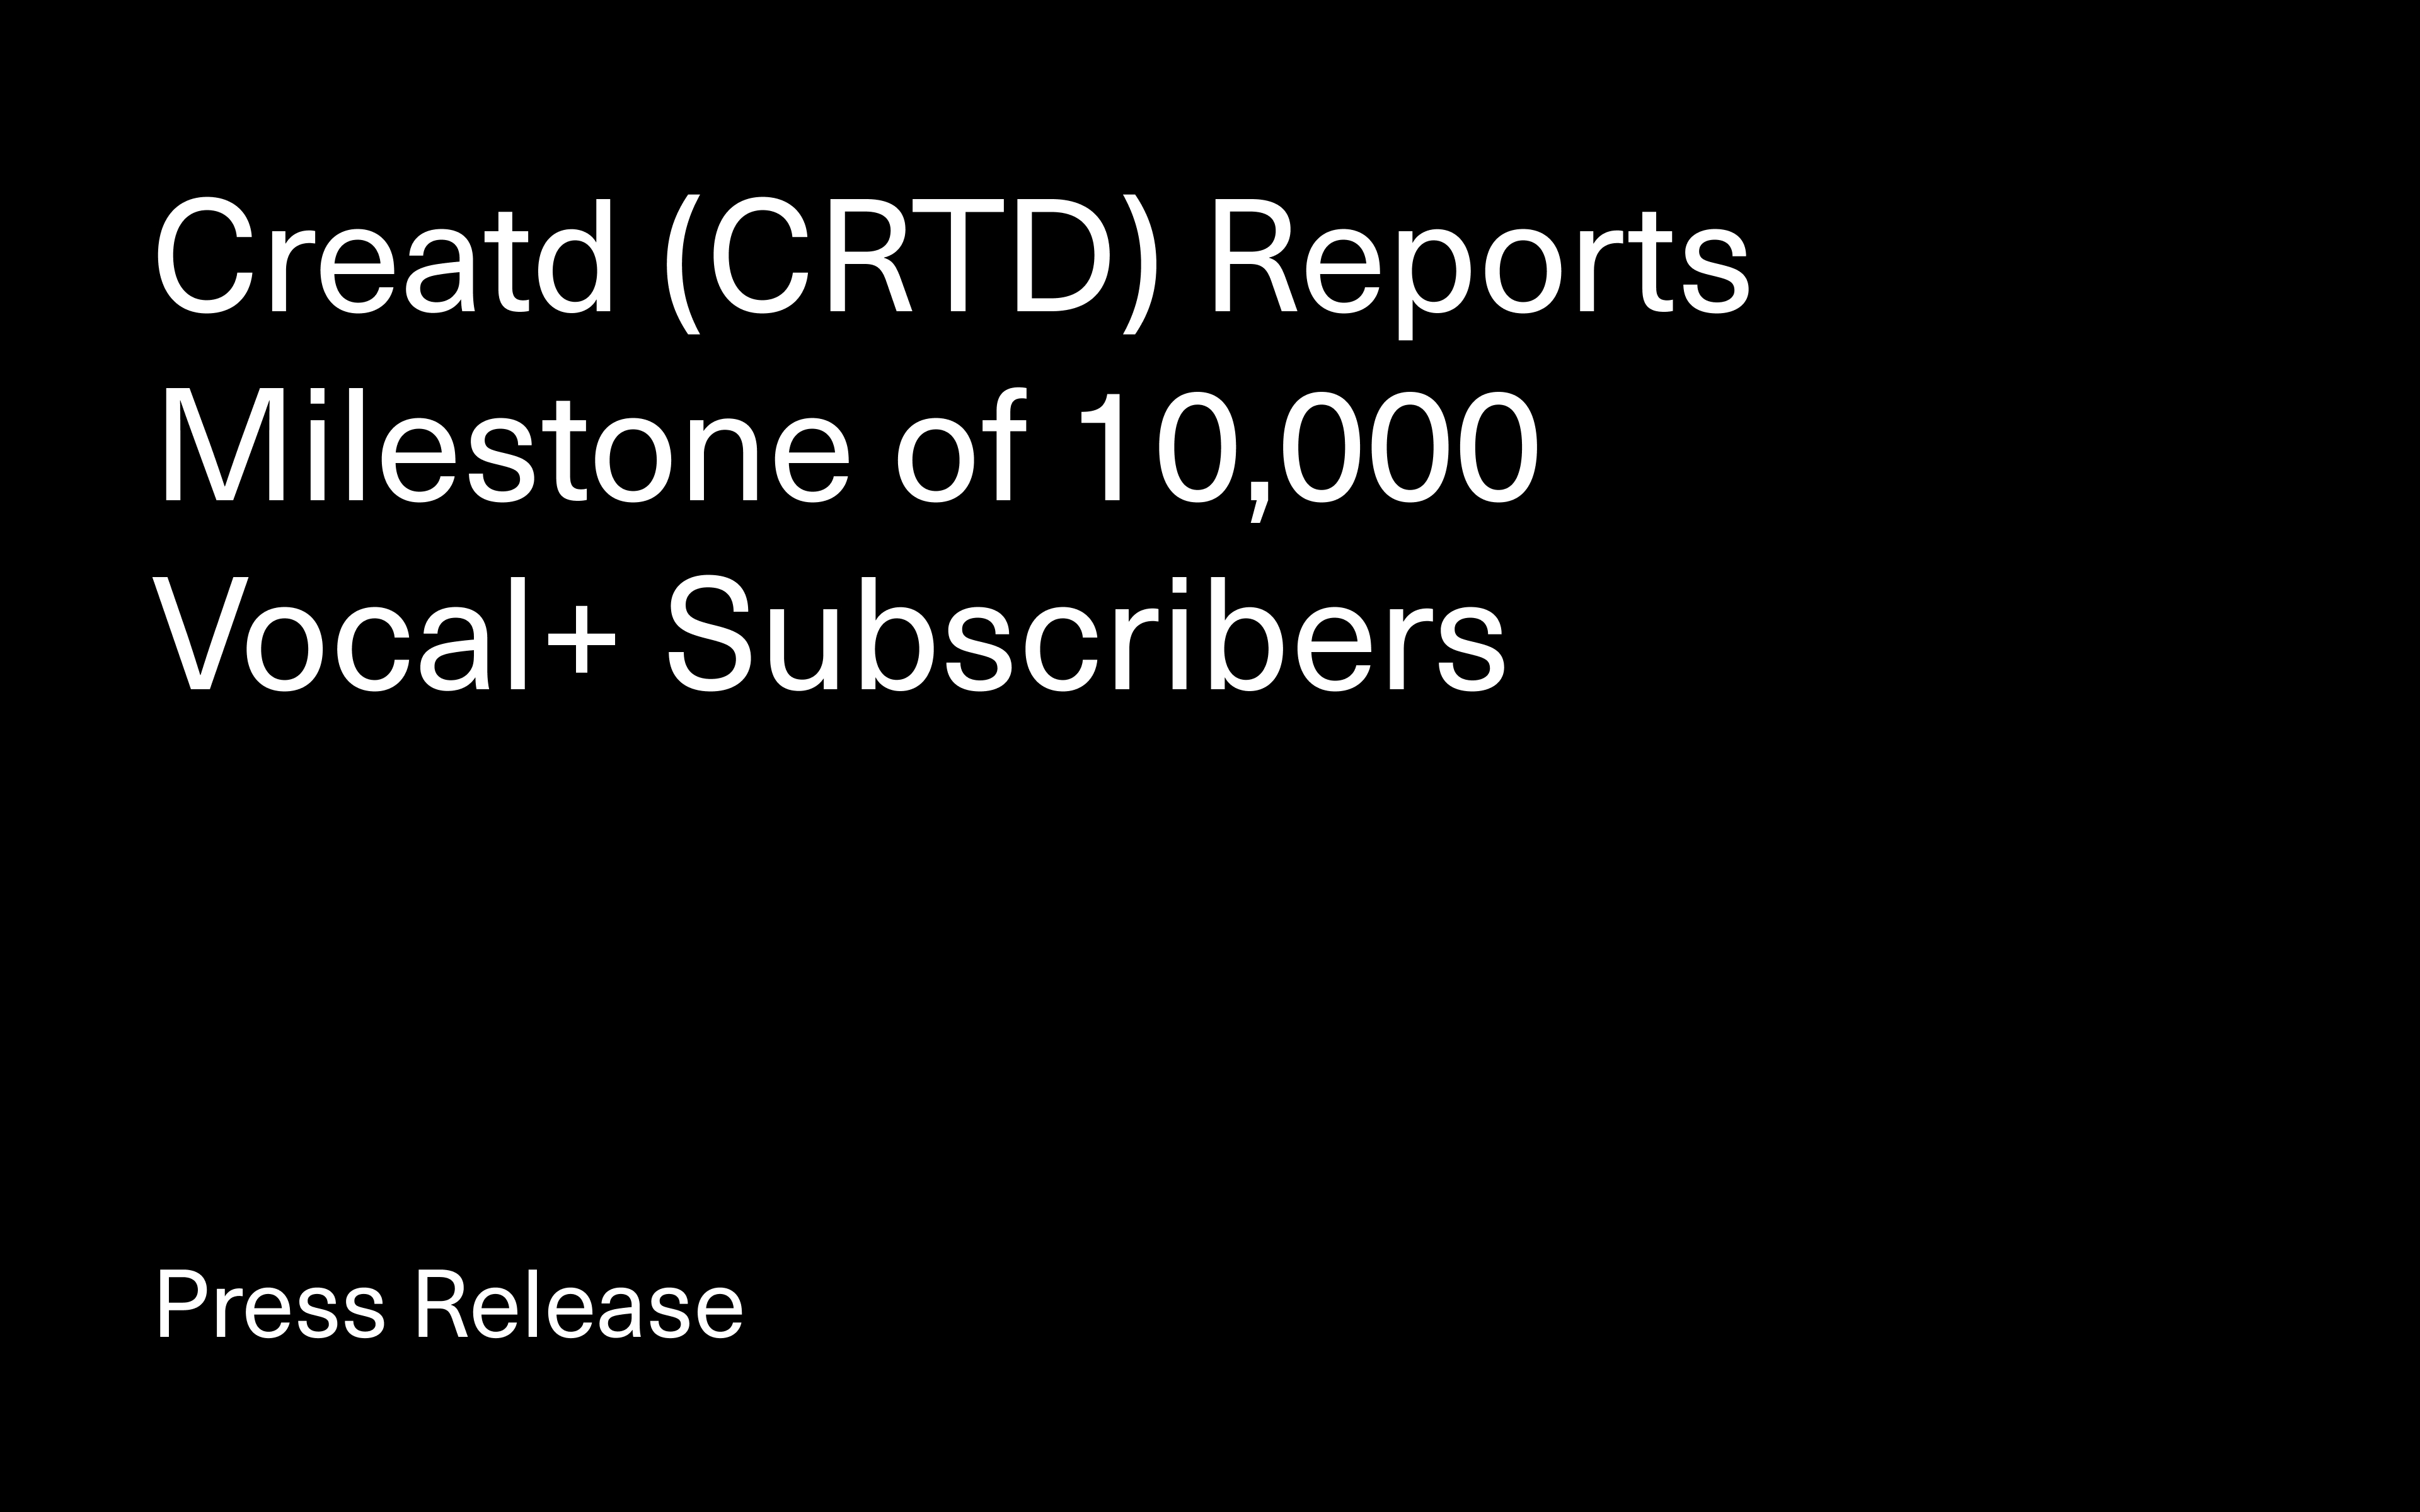 Creatd's Vocal+ Subscriber Count Crosses 10,000, Weeks Ahead of Schedule